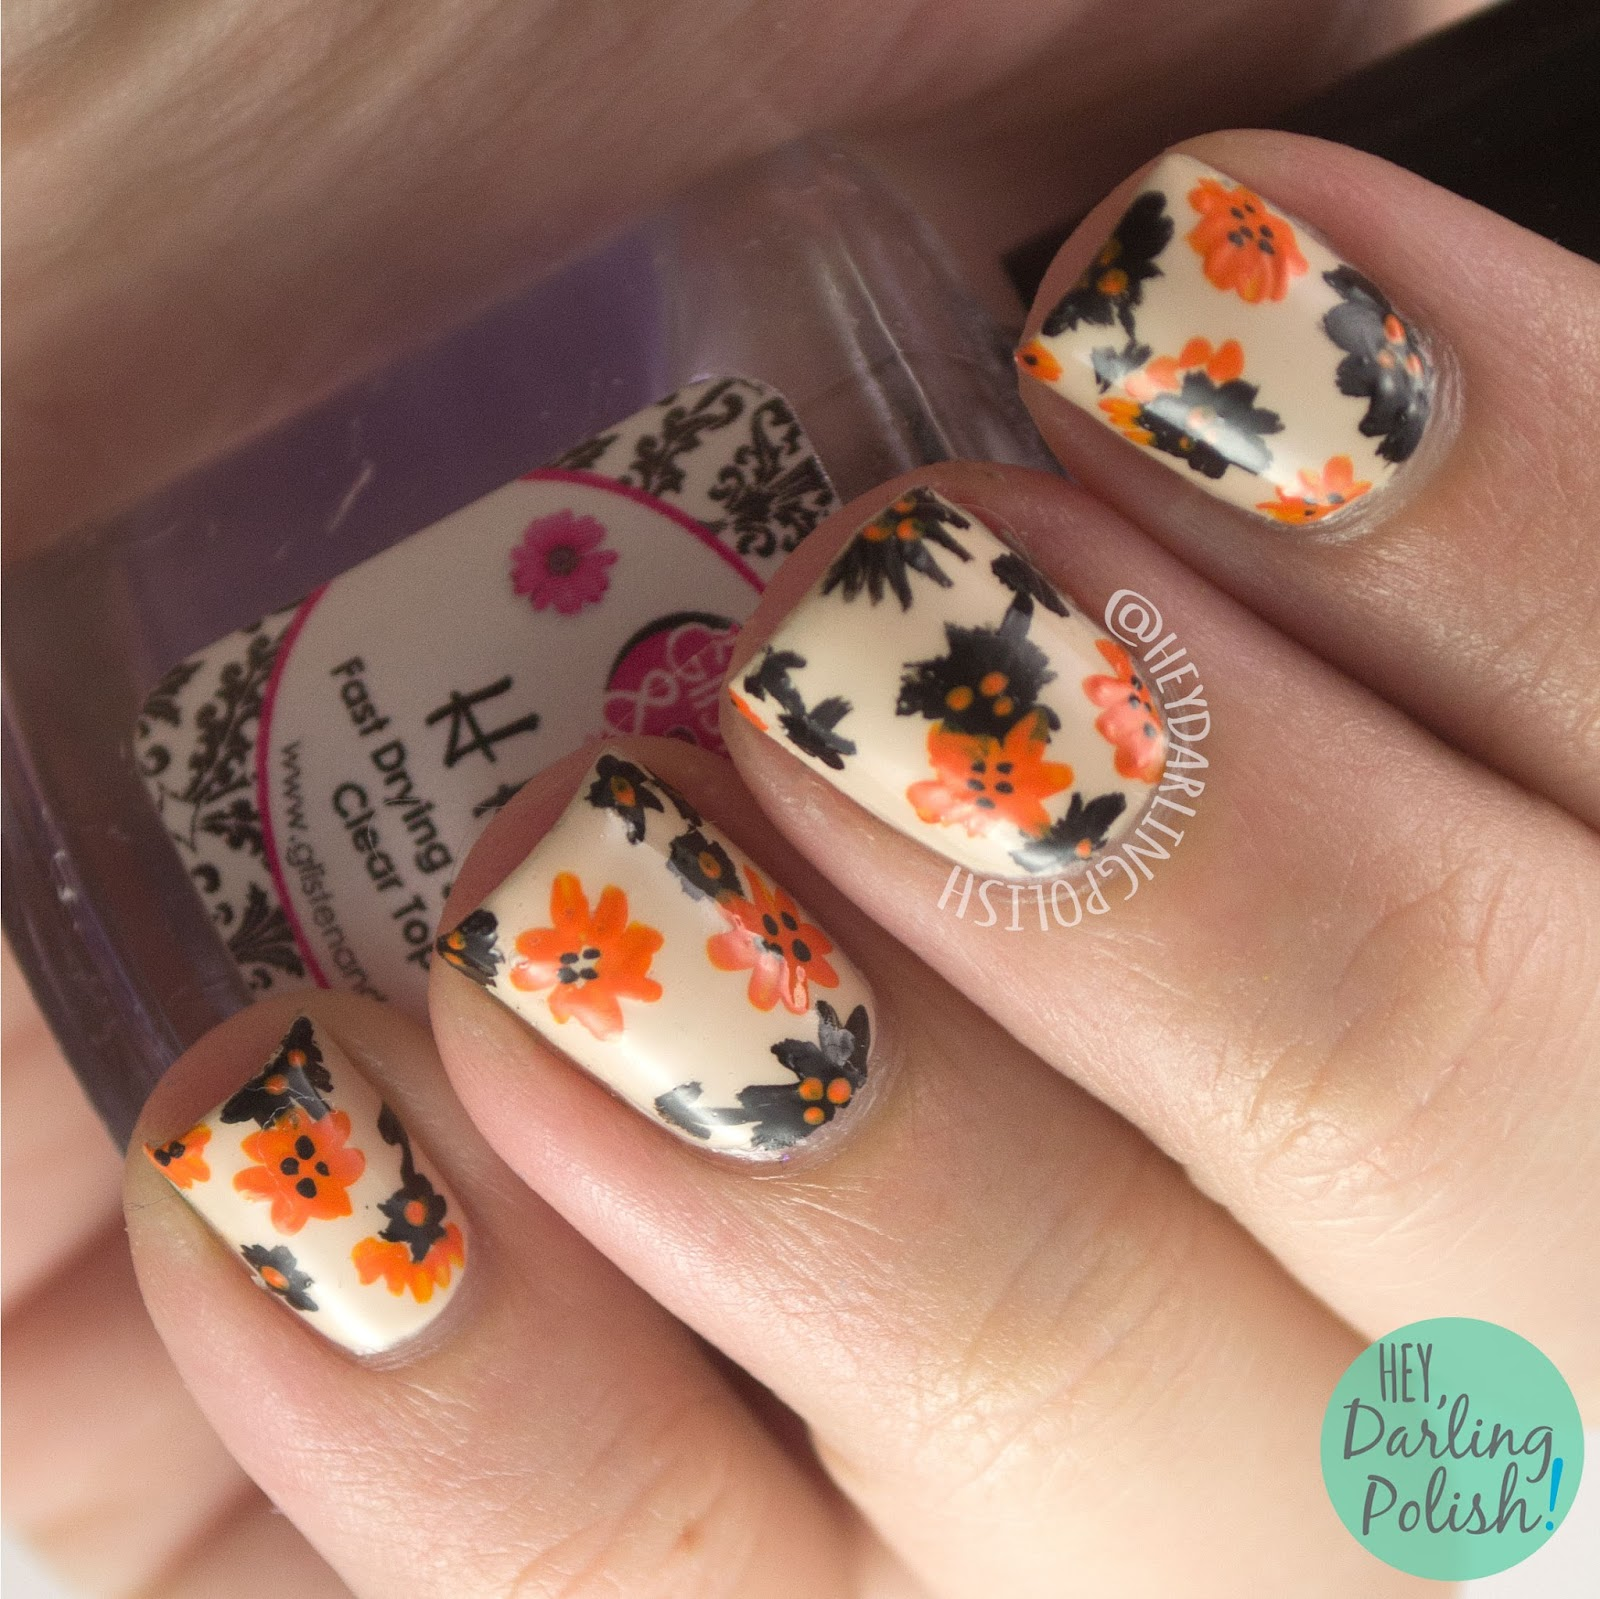 nails, nail art, nail polish, floral, flowers, hey darling polish, orange, grey, 31 day challenge, 31dc2014